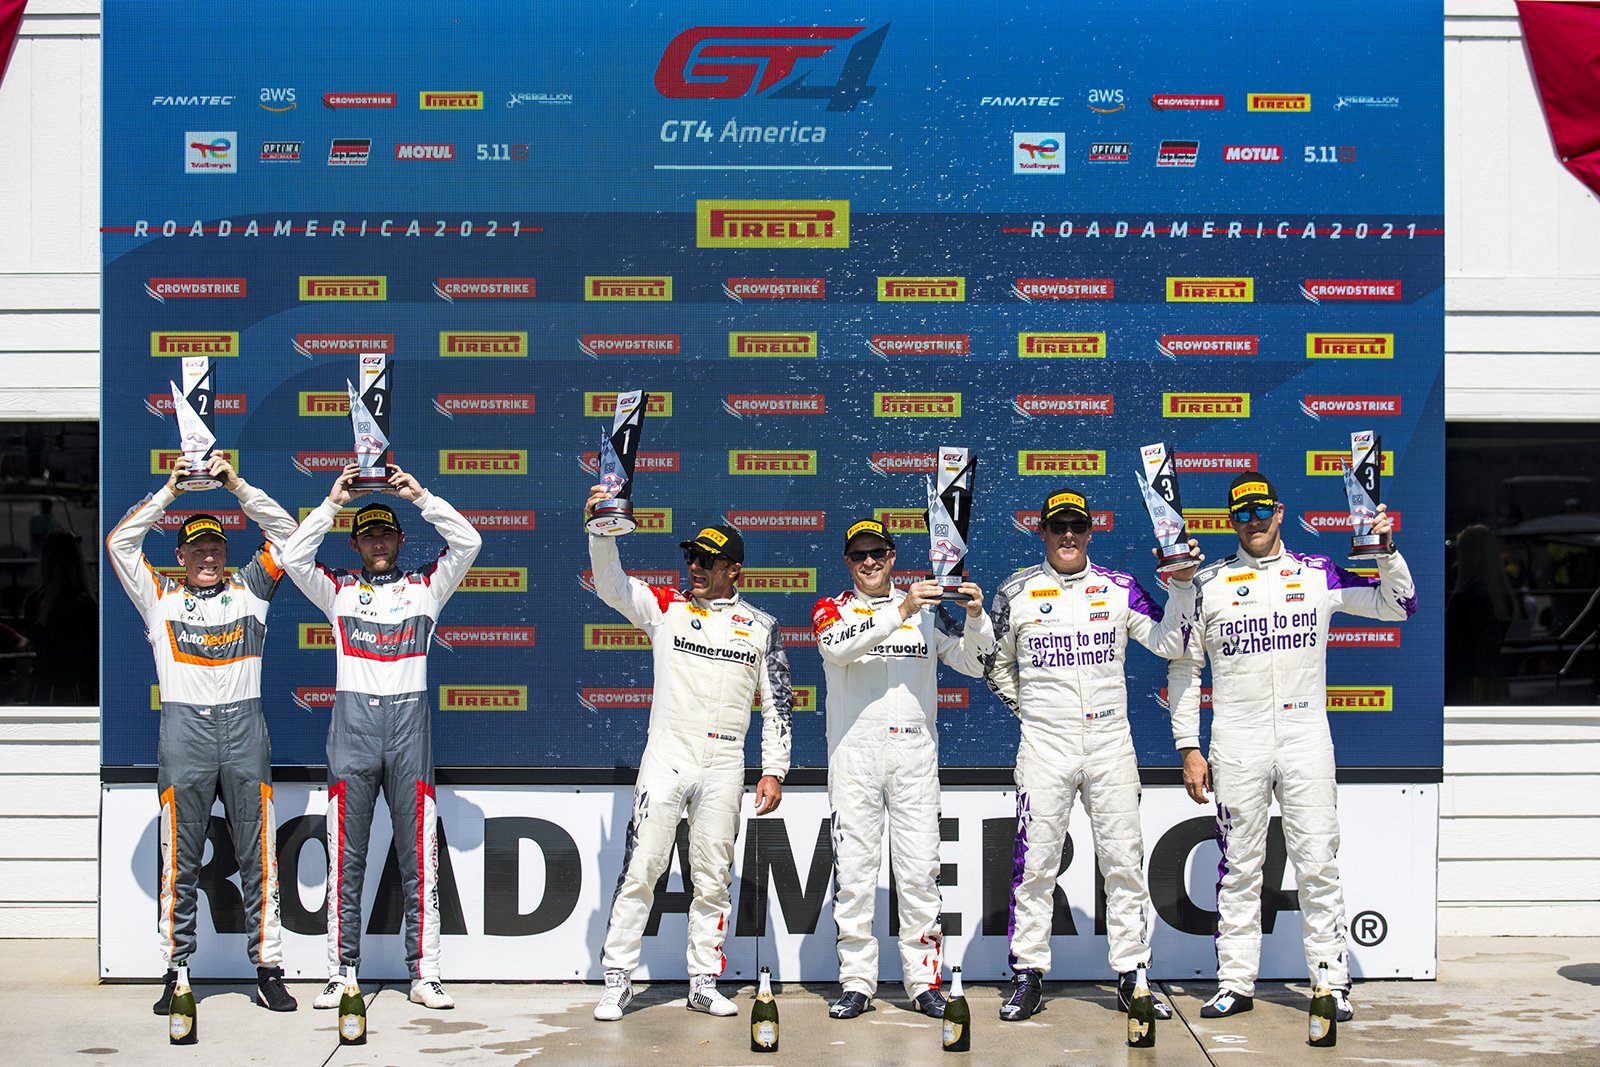 BimmerWorld drivers on the podium at Road America in first and third